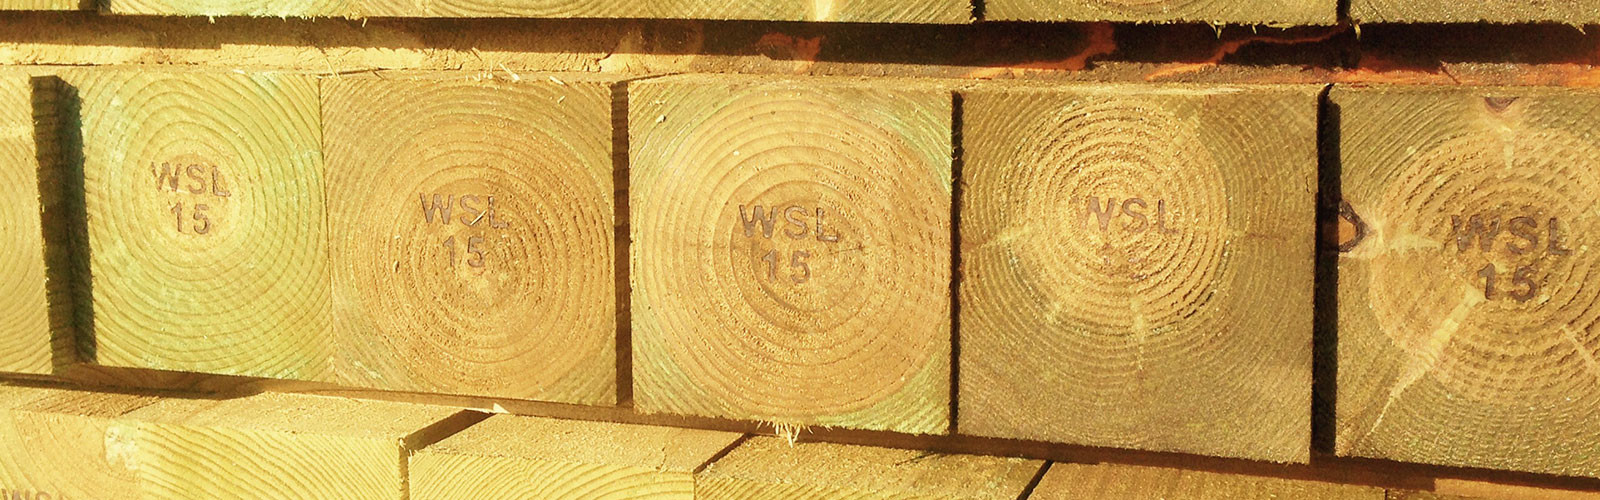 Sawn timber products